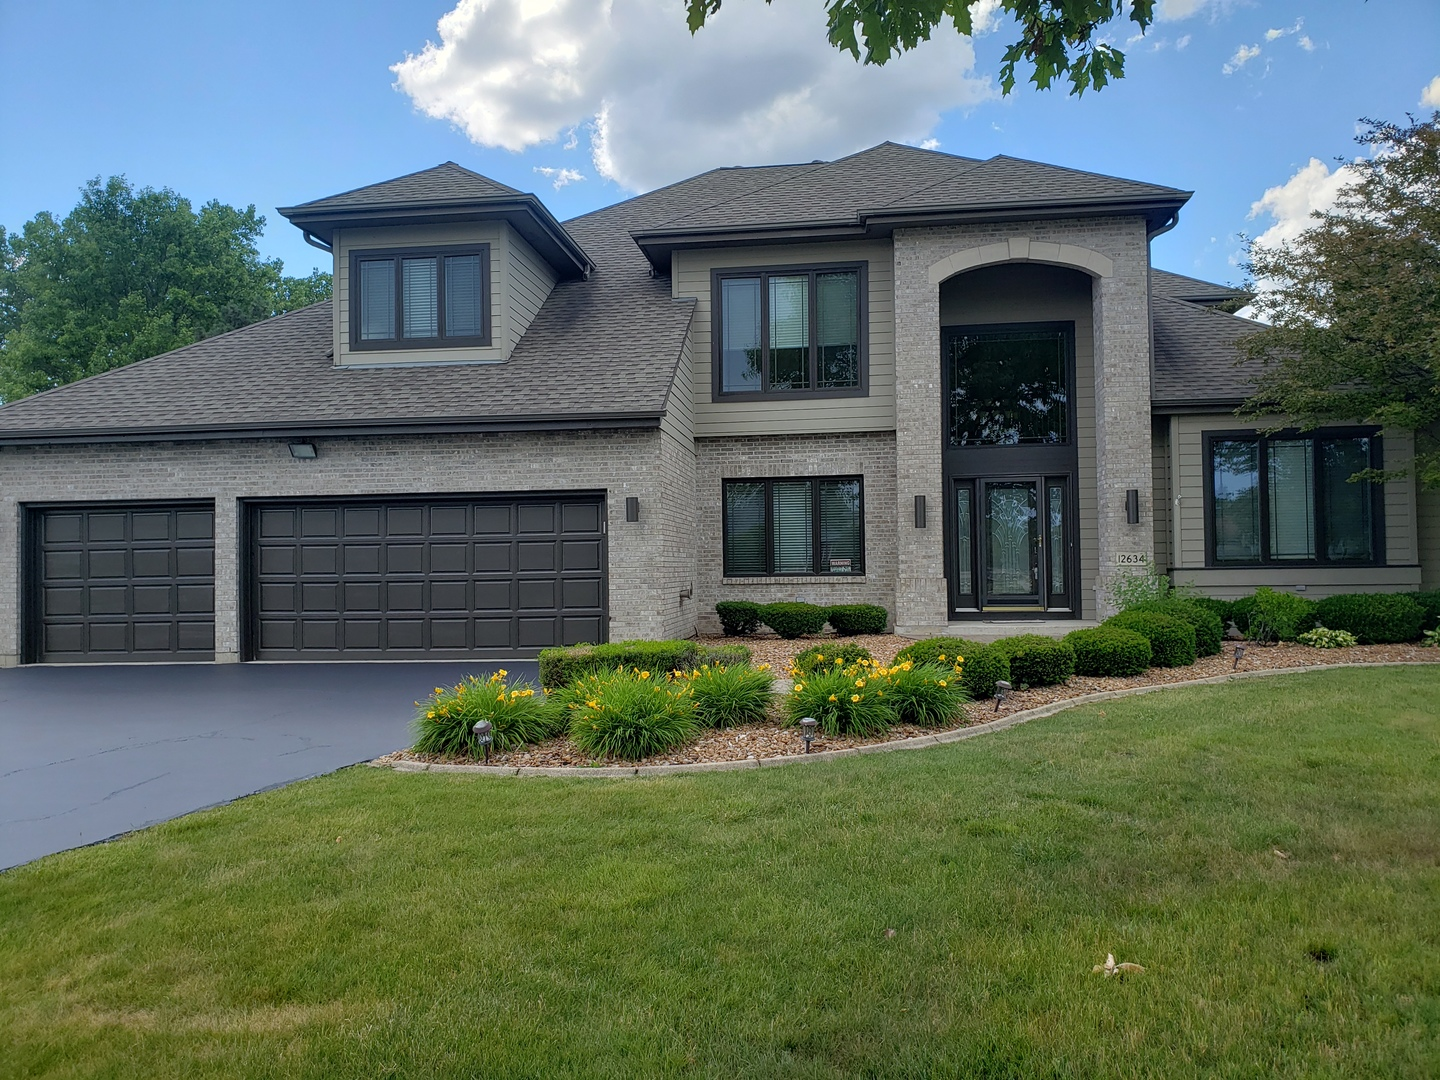 12634 Lake View Drive, Orland Park, Illinois